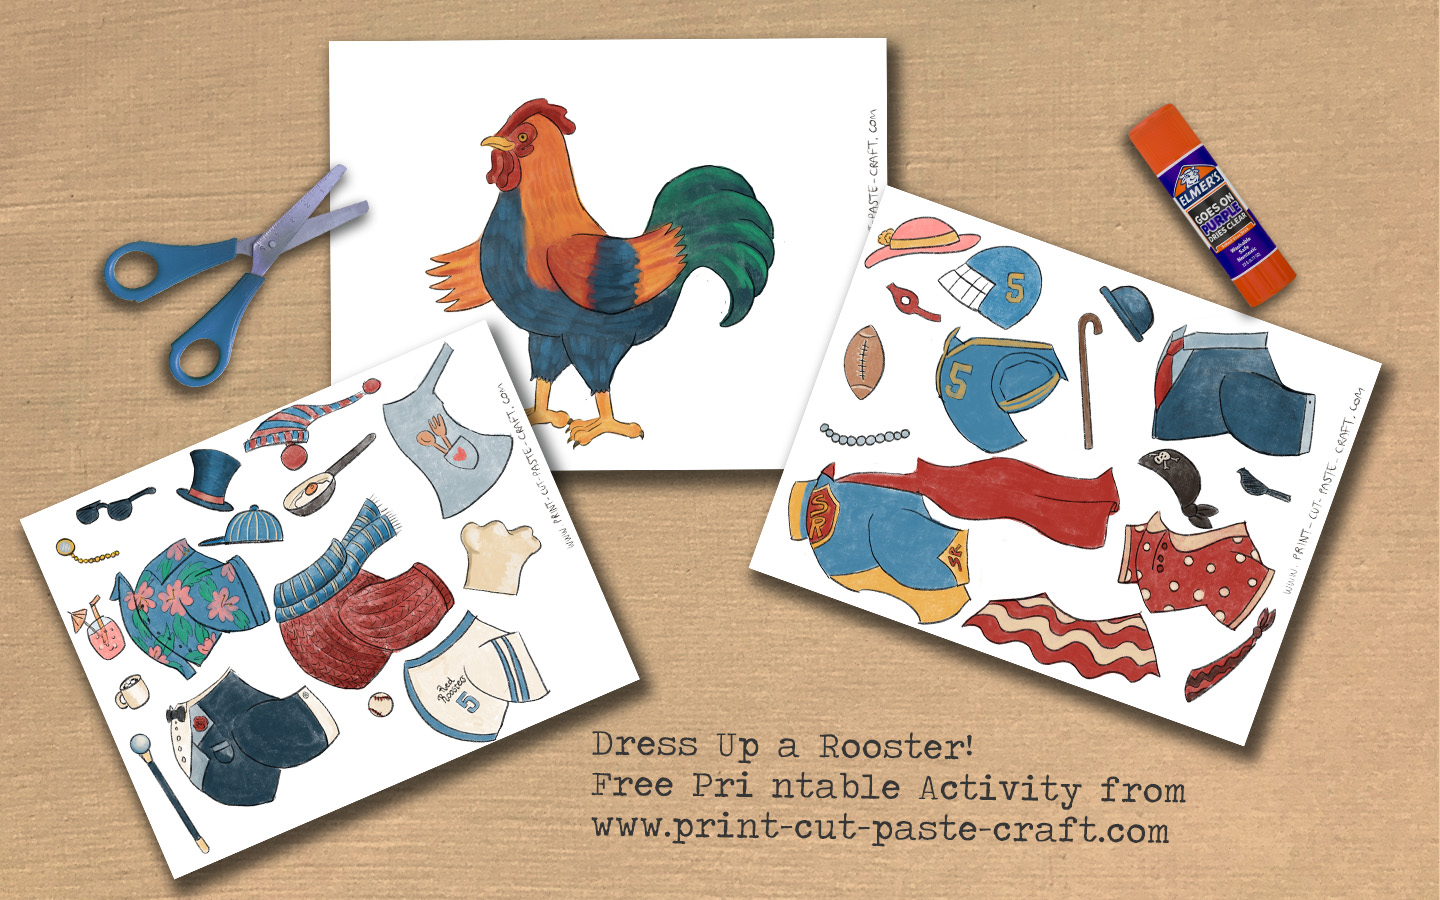 Dress a Rooster Printable Activity Preview